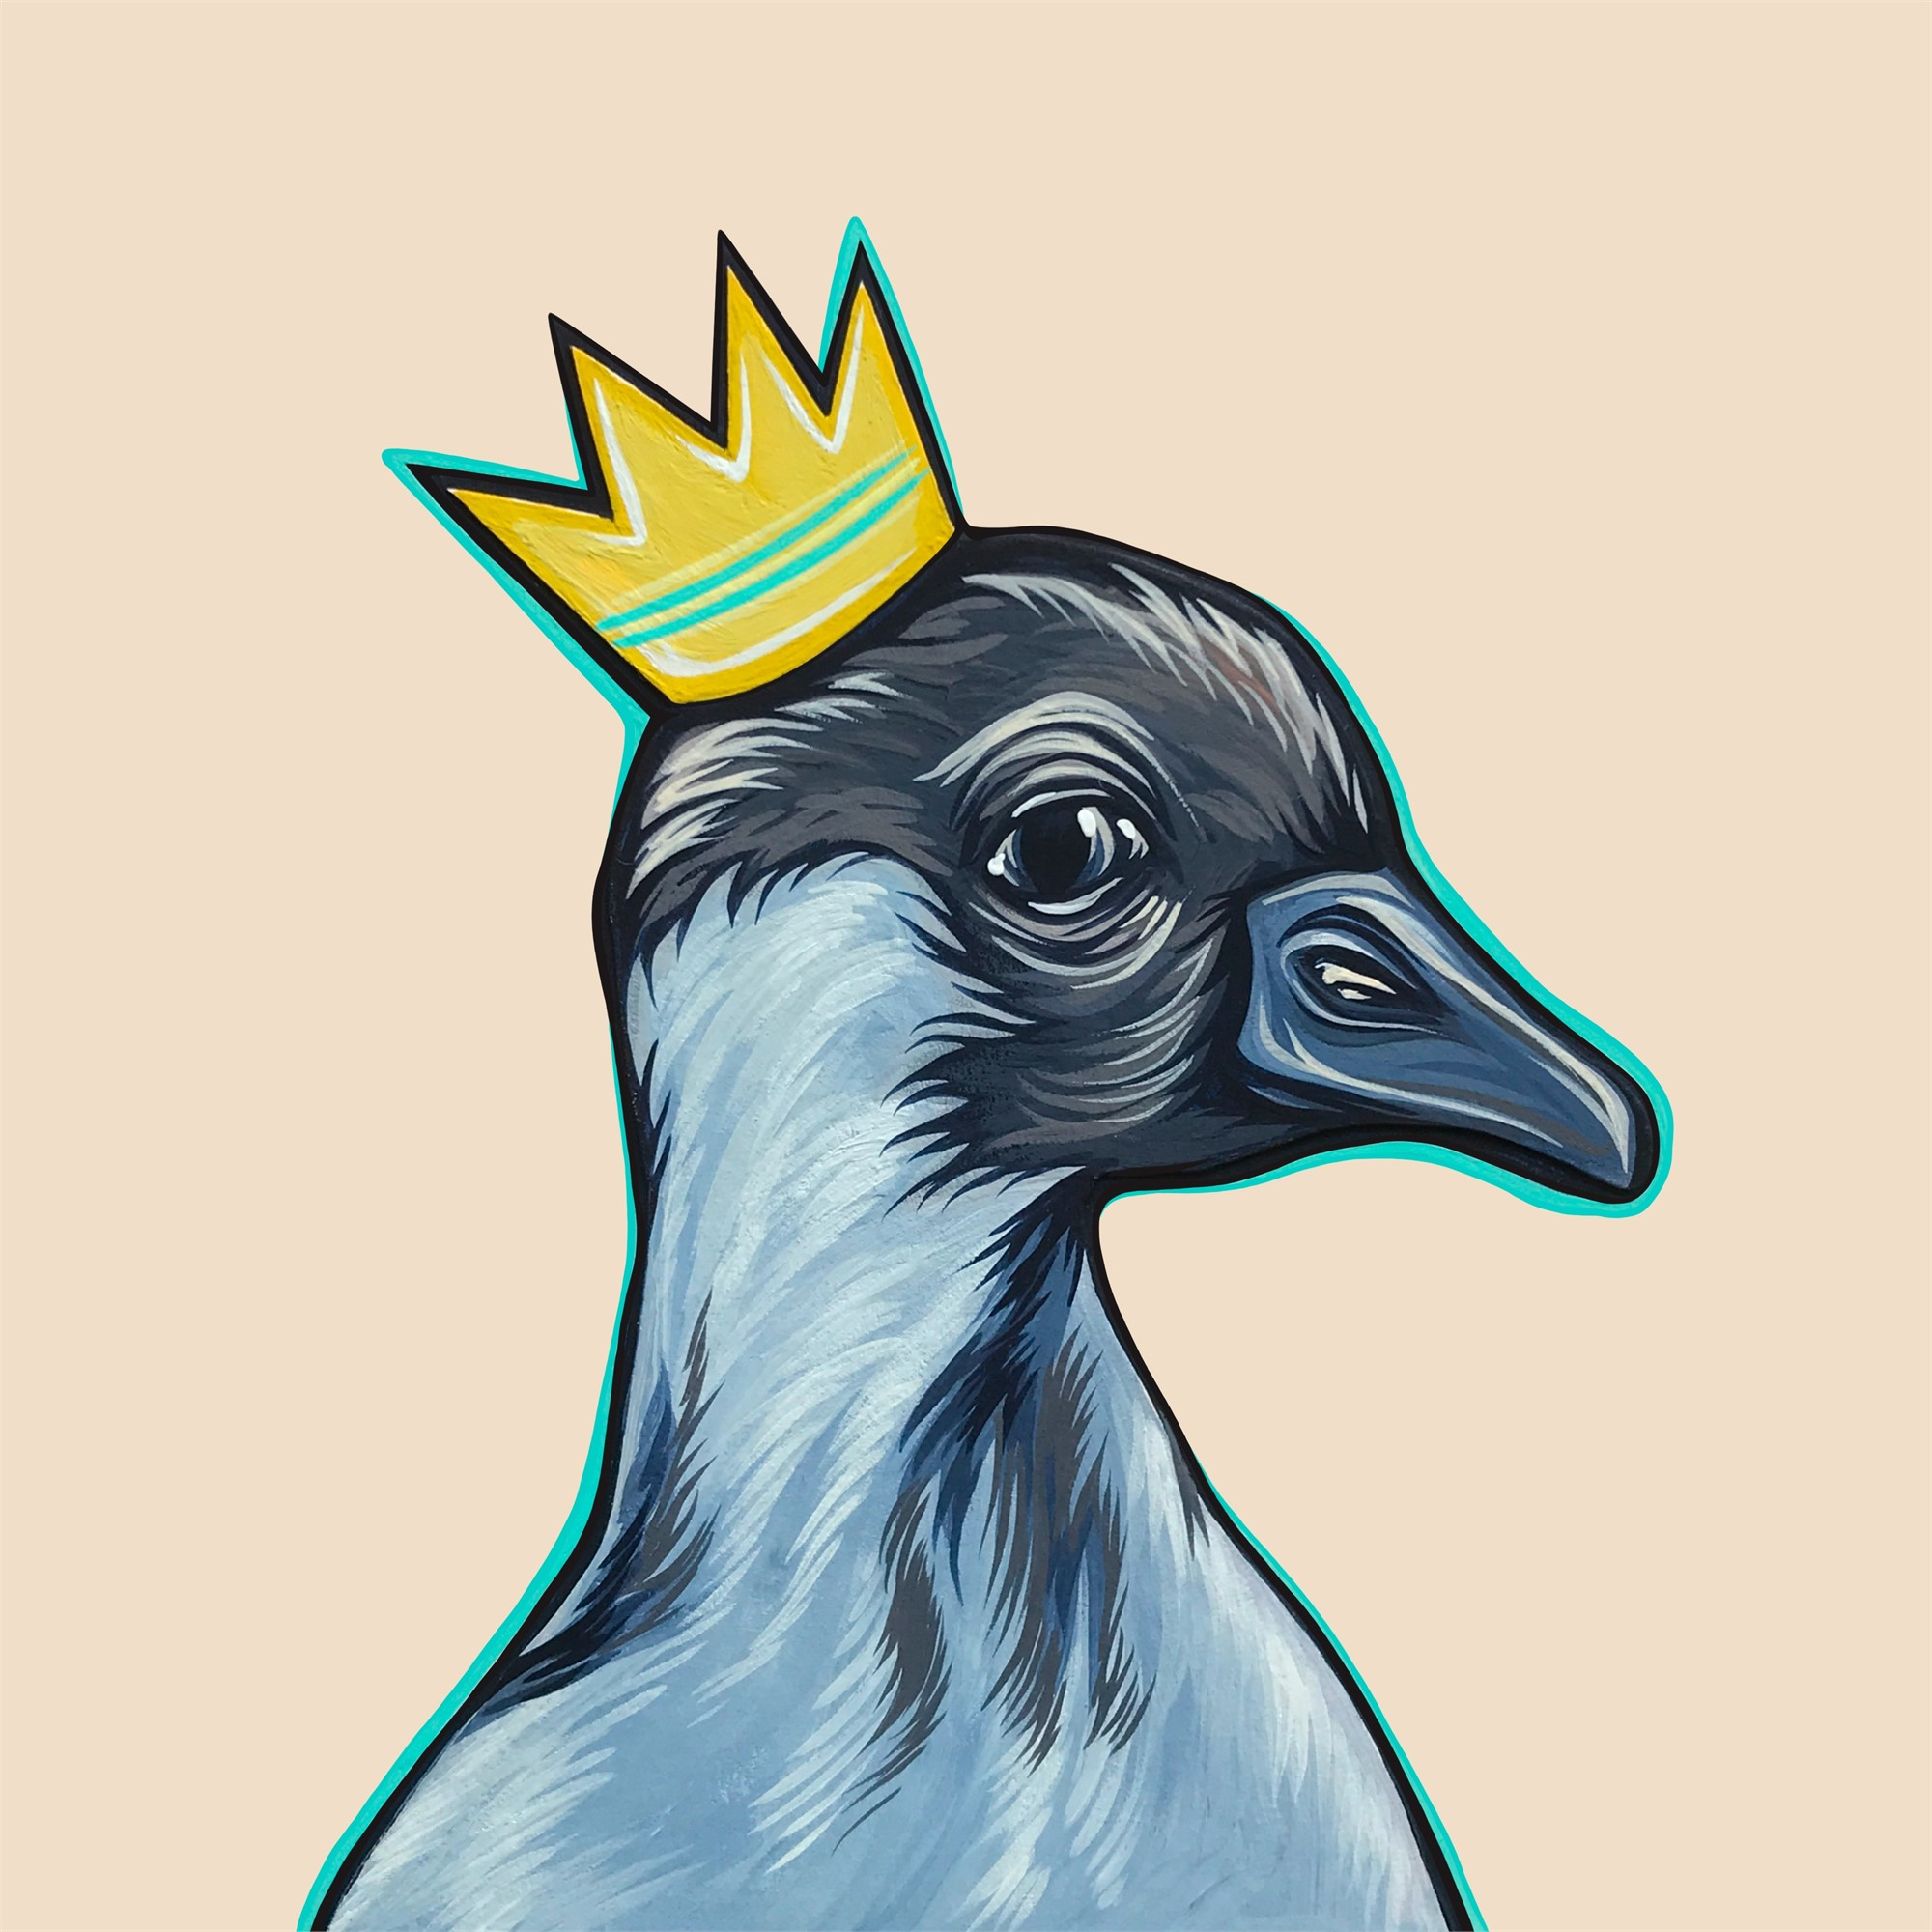 Mighty Ducks Teal Crown by Kaitlin Zeismer